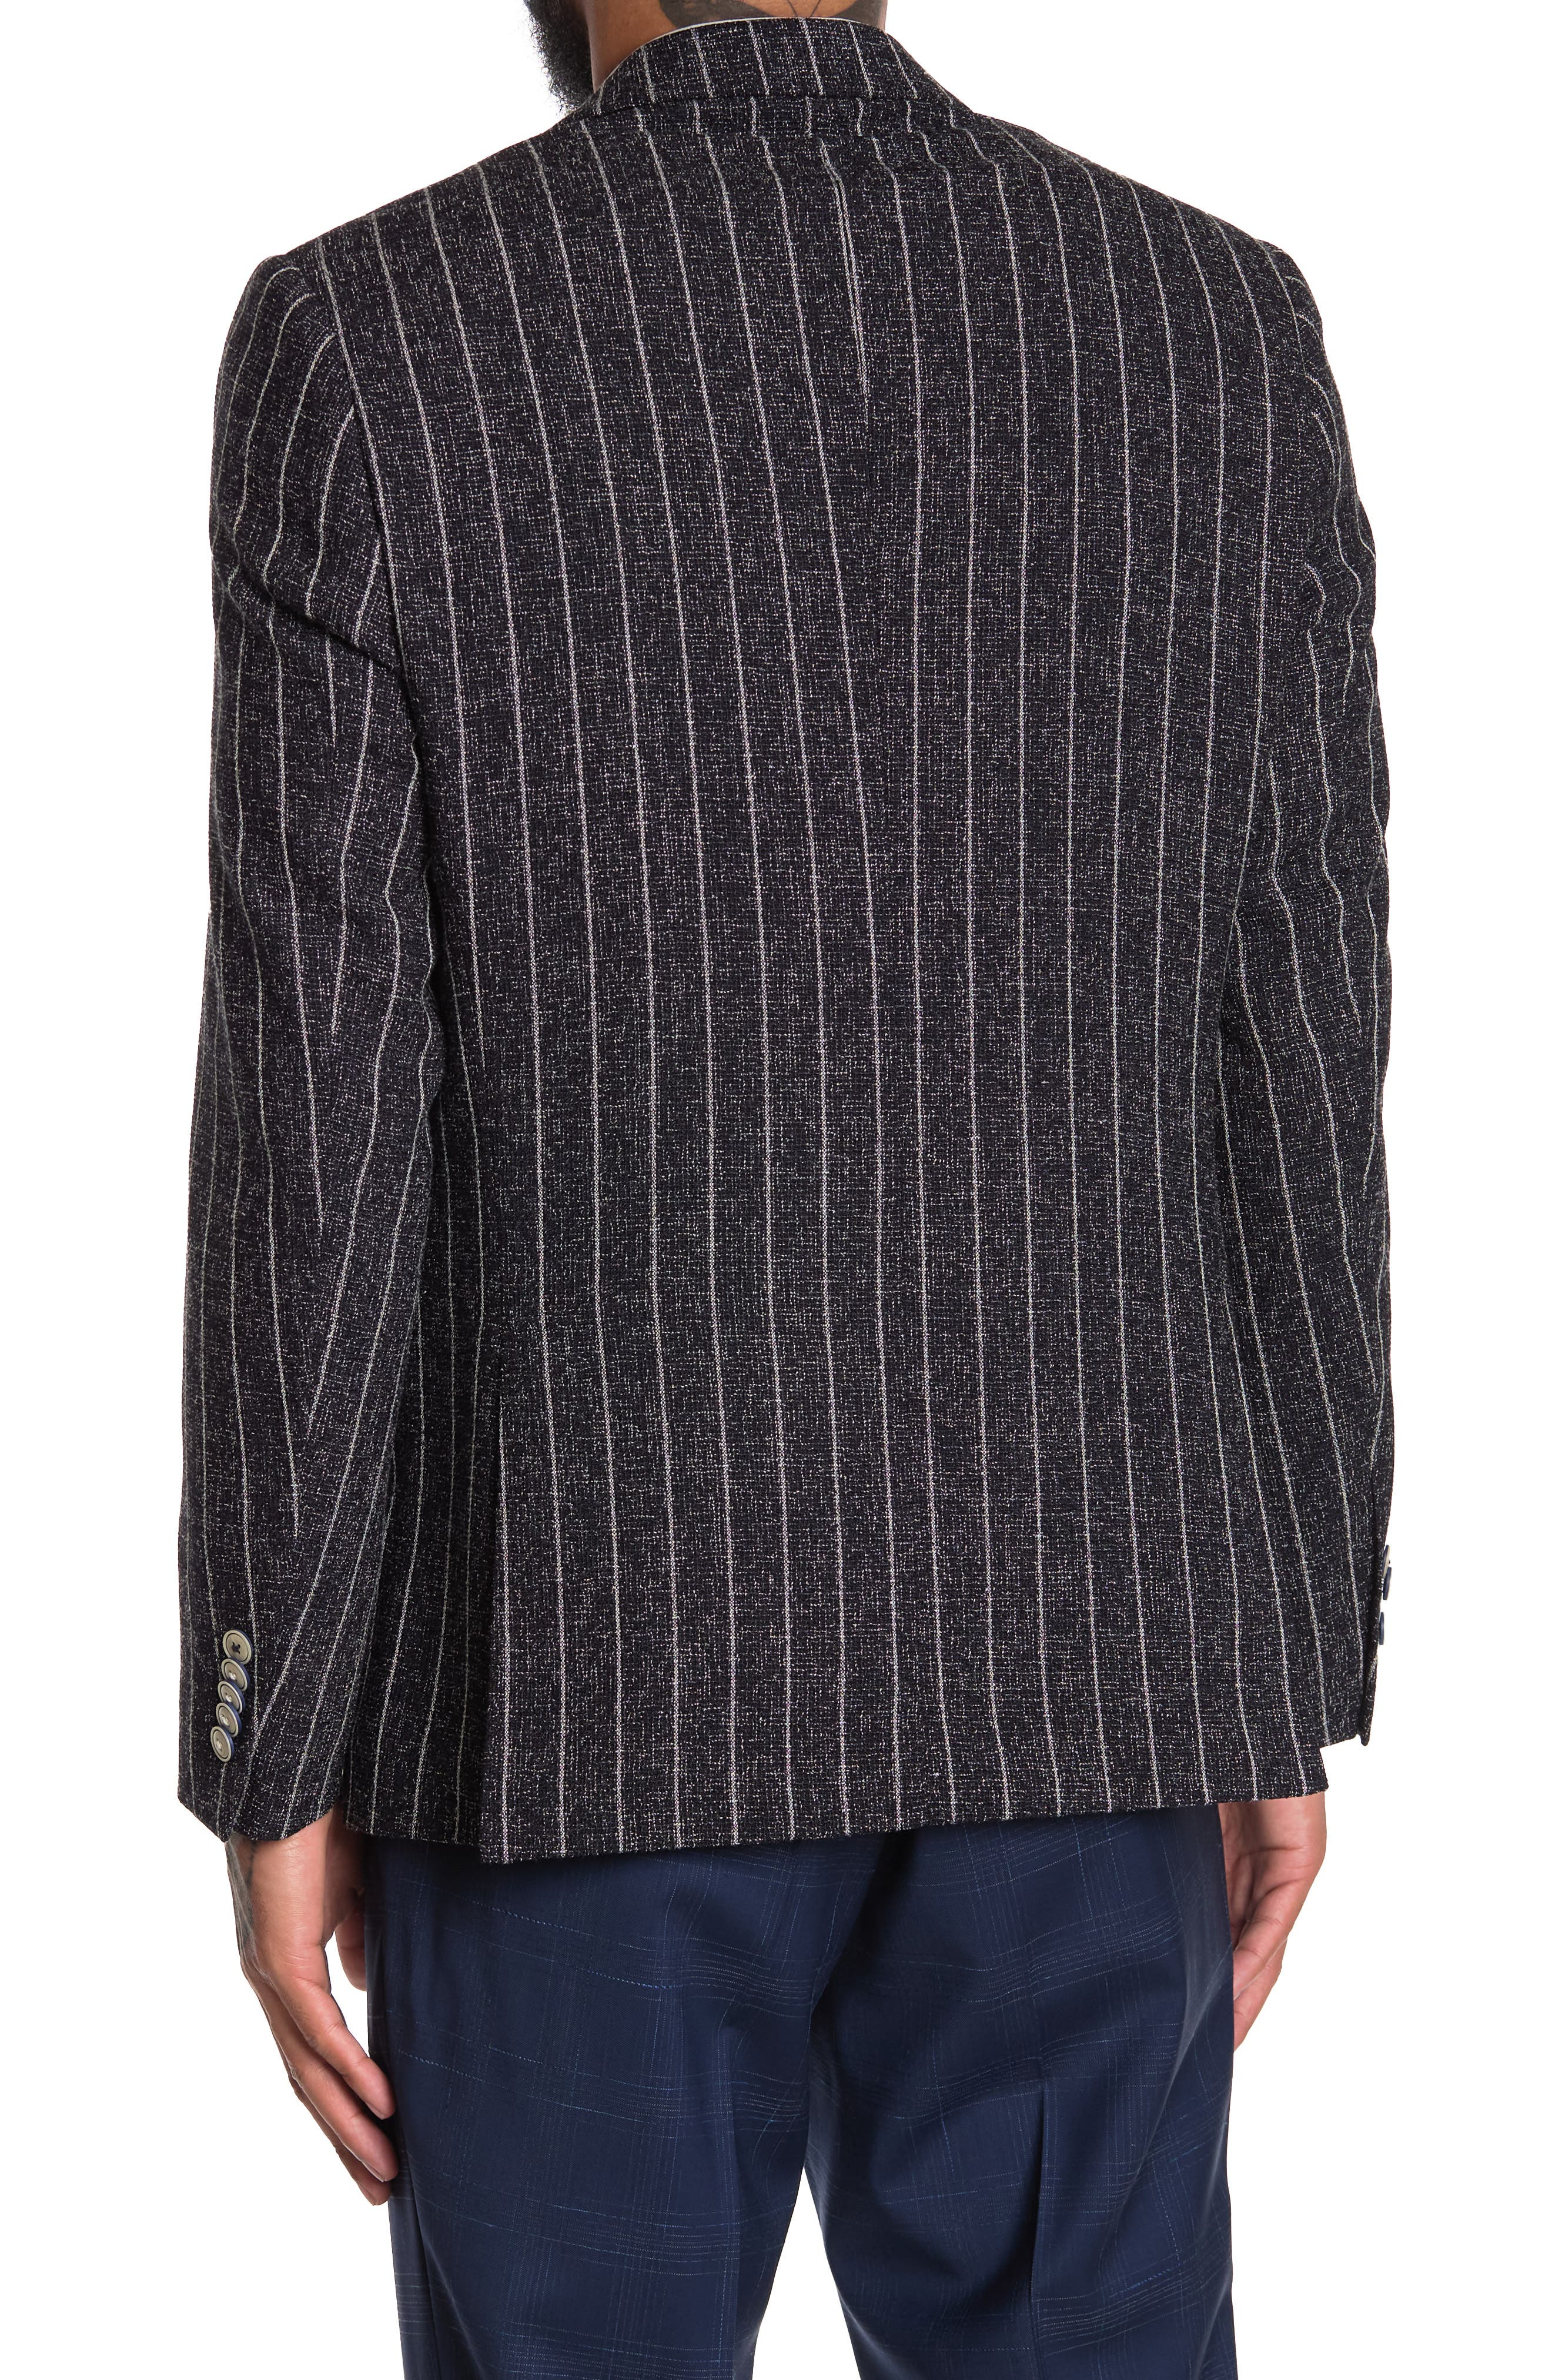 Image of SOUL OF LONDON Navy Chalk Stripe Print NOtch Collar Double Breasted Jacket